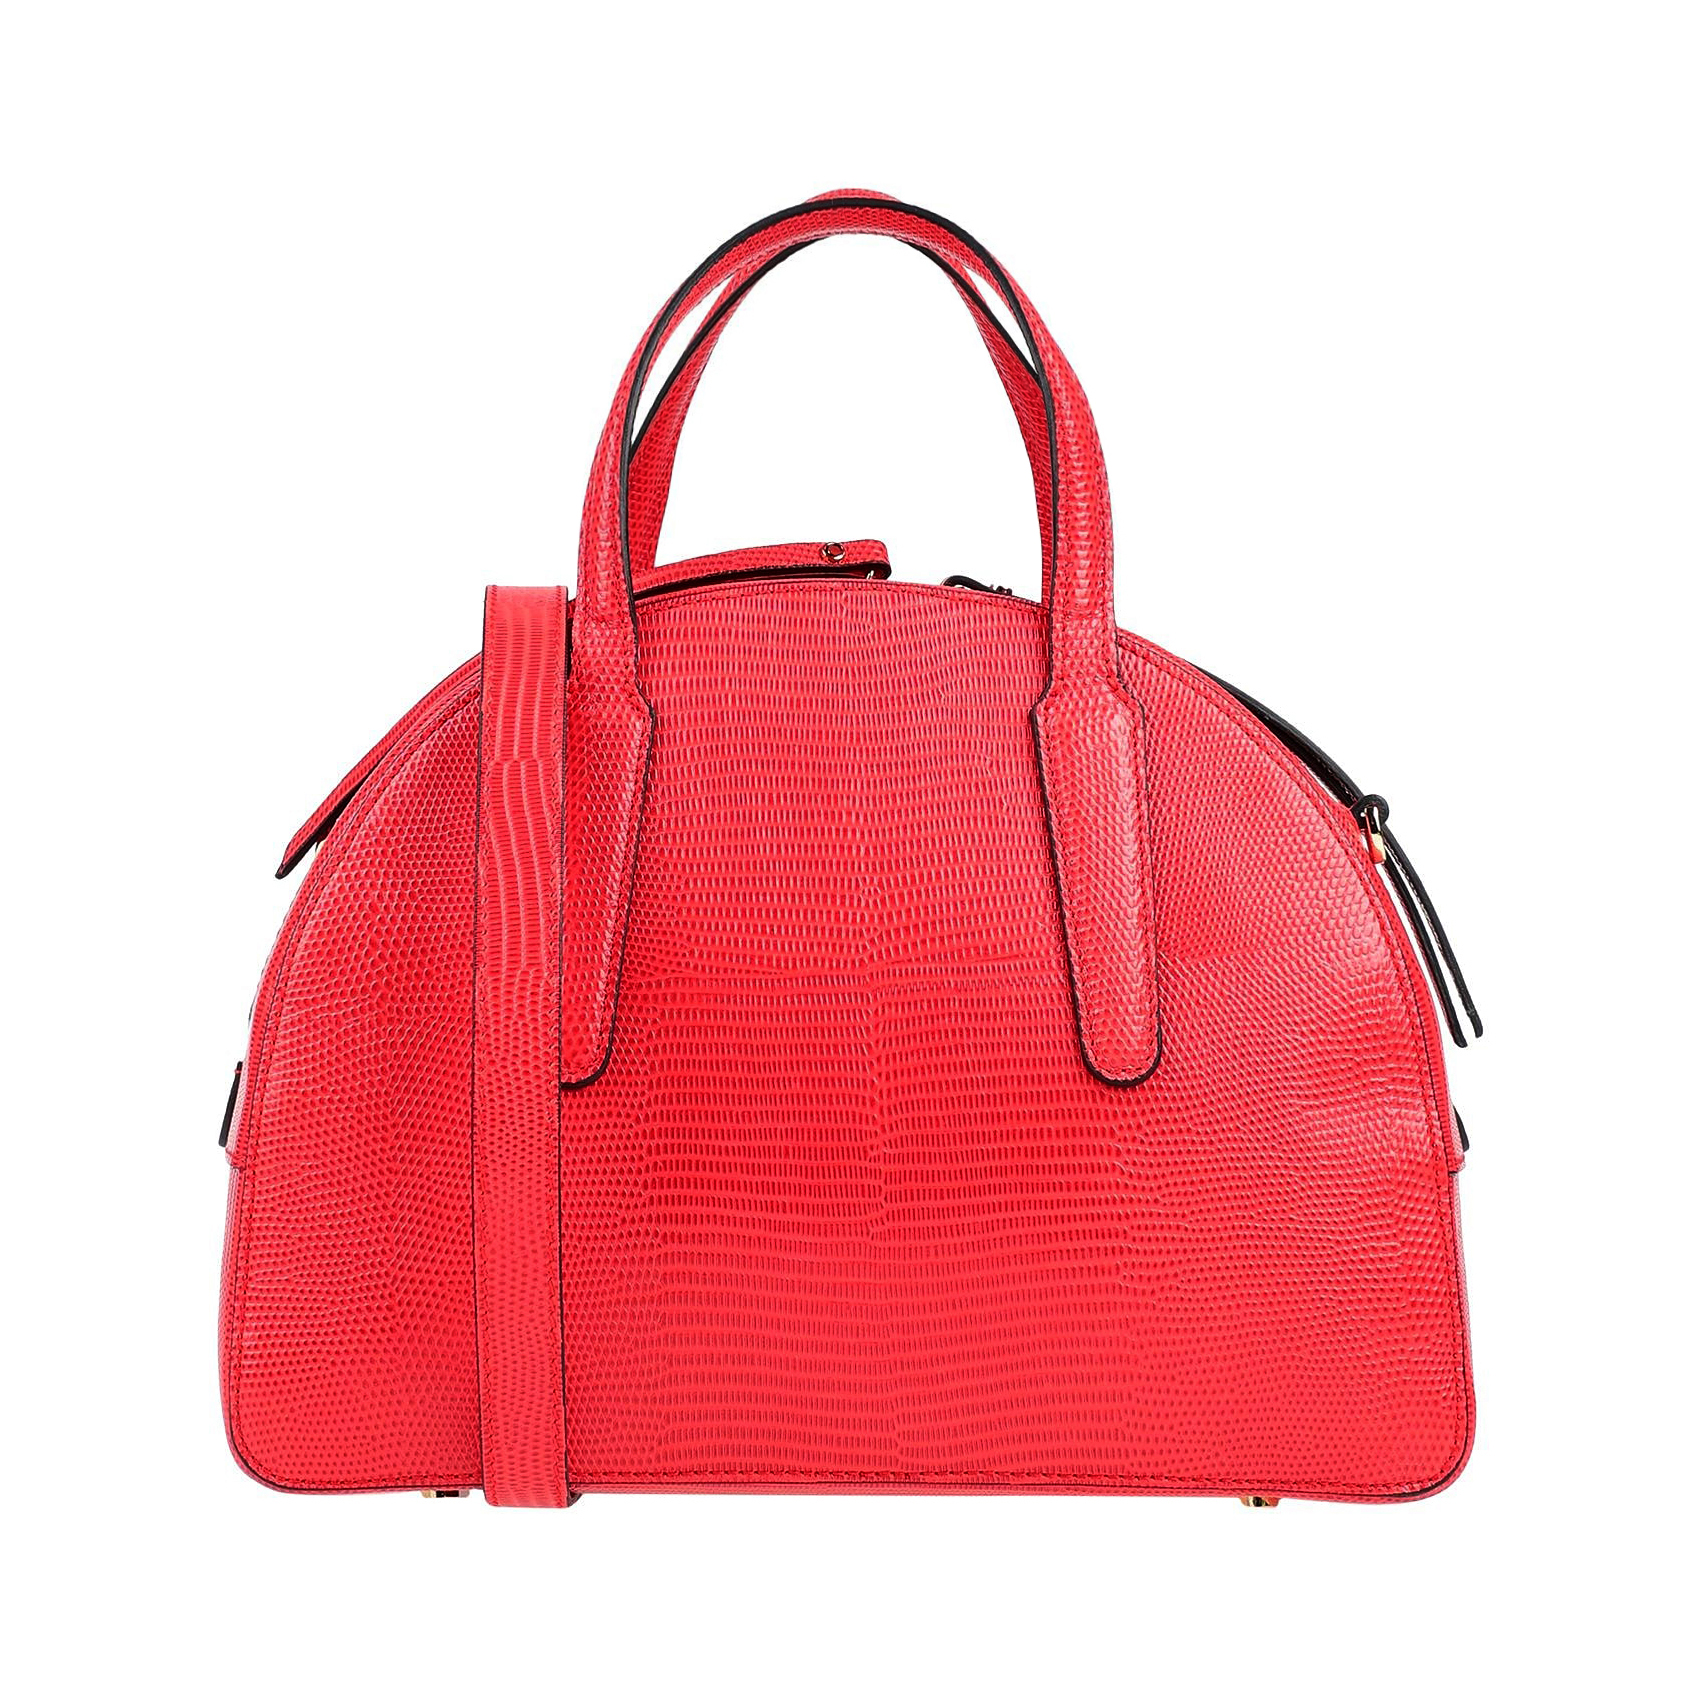 Gianni Chiarini Italian Made Red Embossed Leather Small Tote